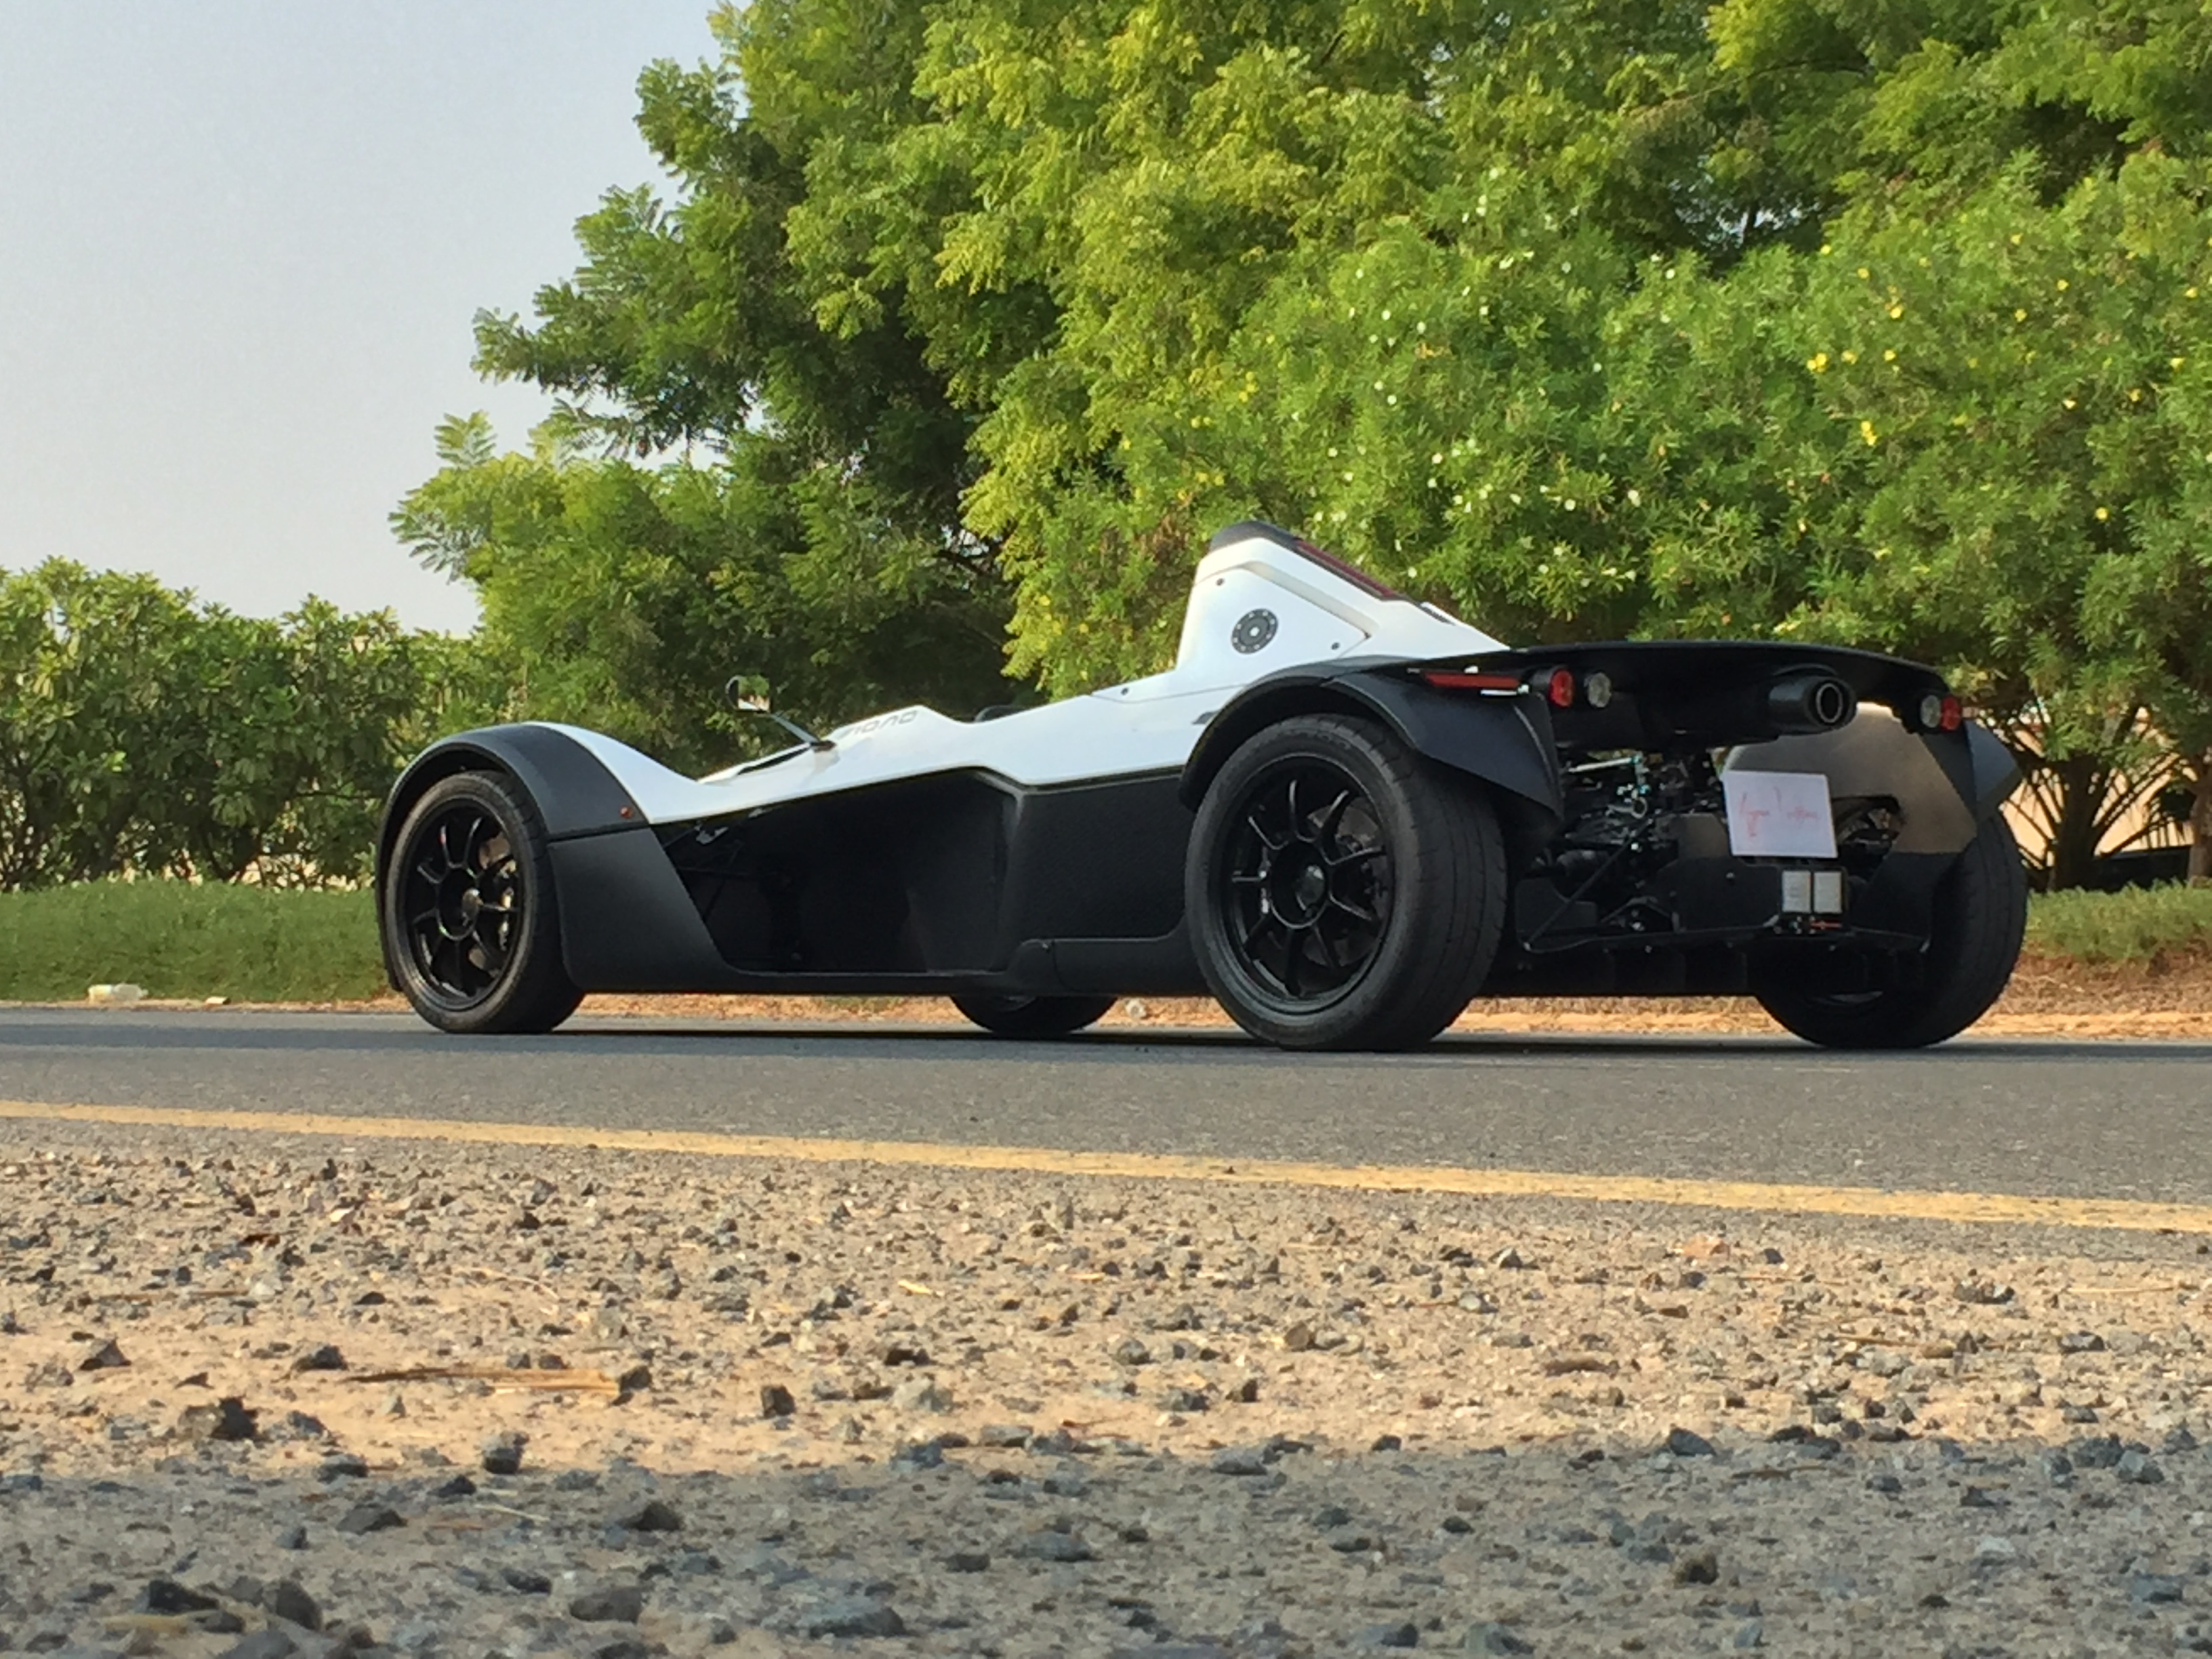 Bac Mono For Sale >> Hyper Voitures Bac Mono For Sale